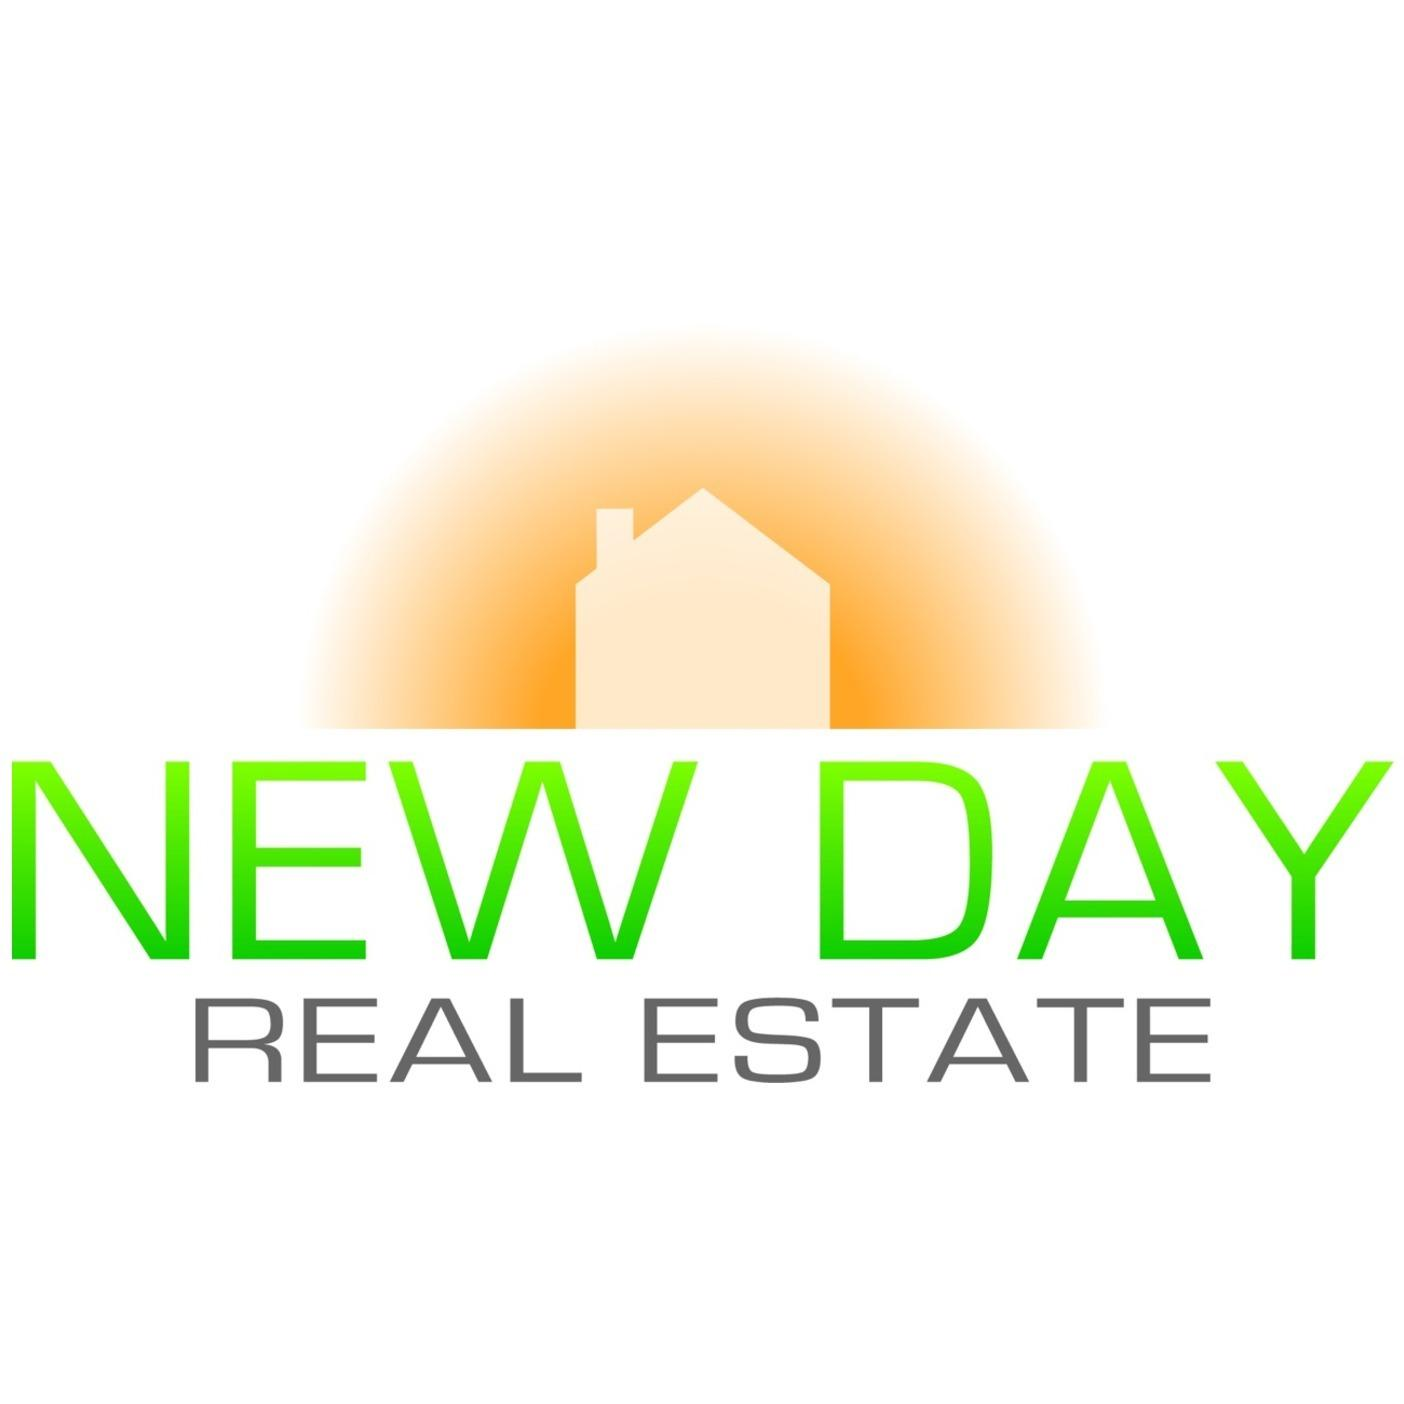 New Day Real Estate image 2